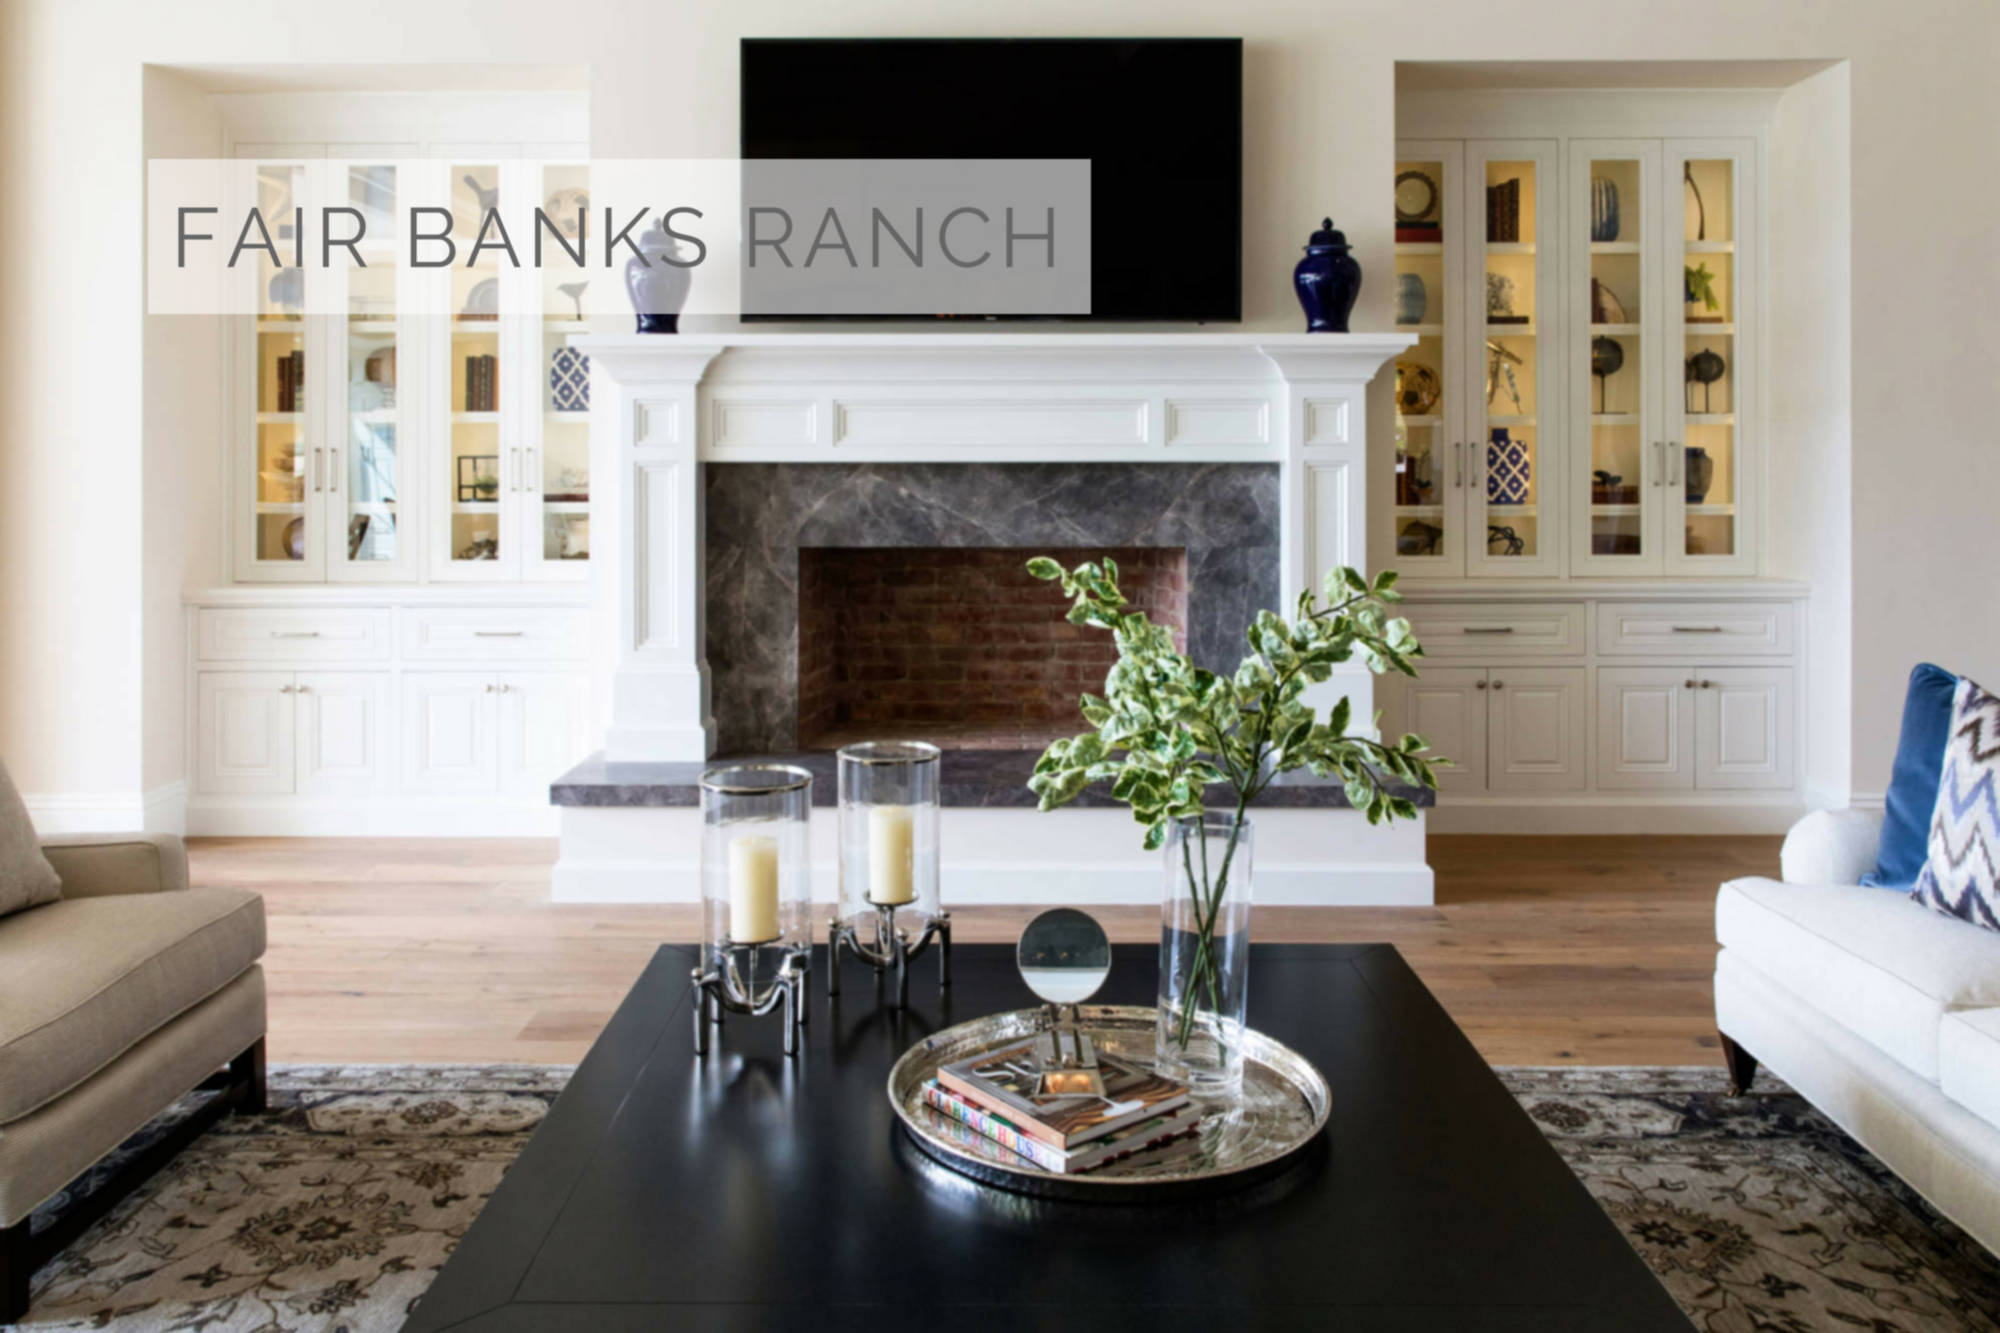 Fairbanks Ranch - Interior Design San Diego